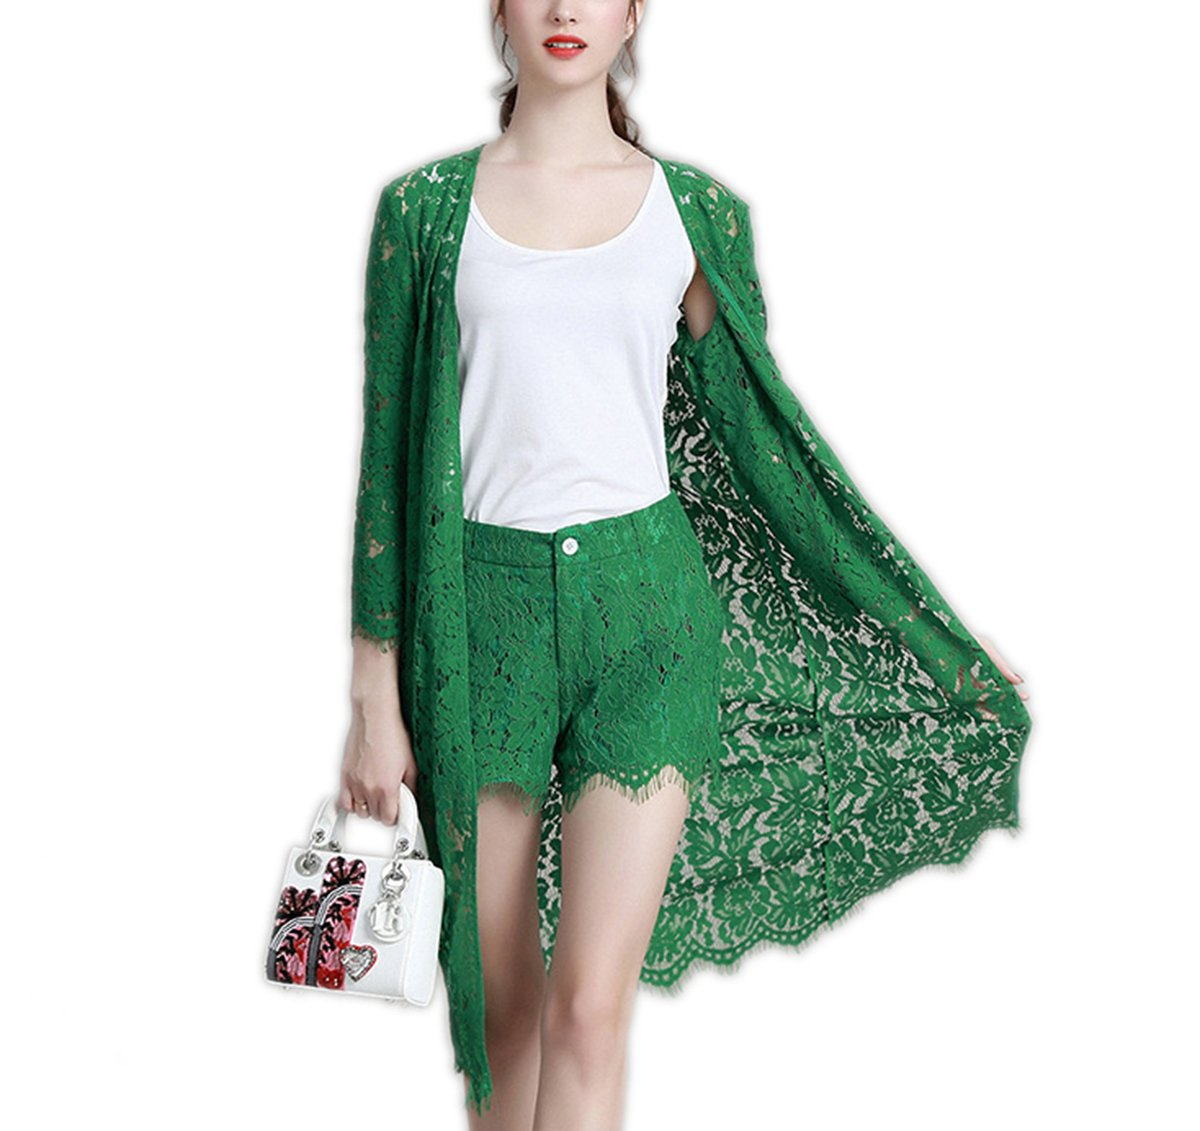 Weing Lace Suit Women Short Sets 3 Piece Set Women Cardigan+Camisoles+Shorts Suits Green XL by Weing